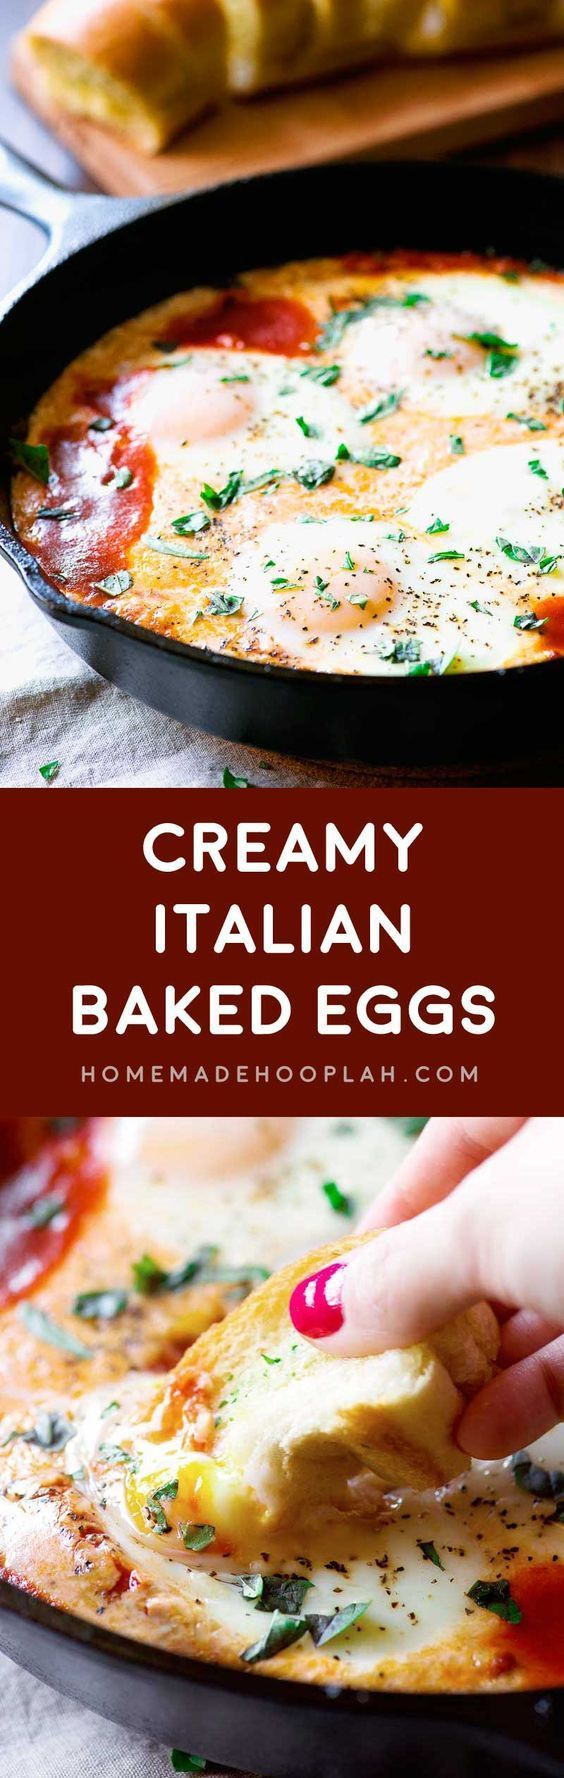 Creamy Italian Baked Eggs! Sunny side up eggs baked on a bed of marinara, milk, and cheese. Serve with garlic bread for that extra dose of Italian flair. | HomemadeHooplah.com